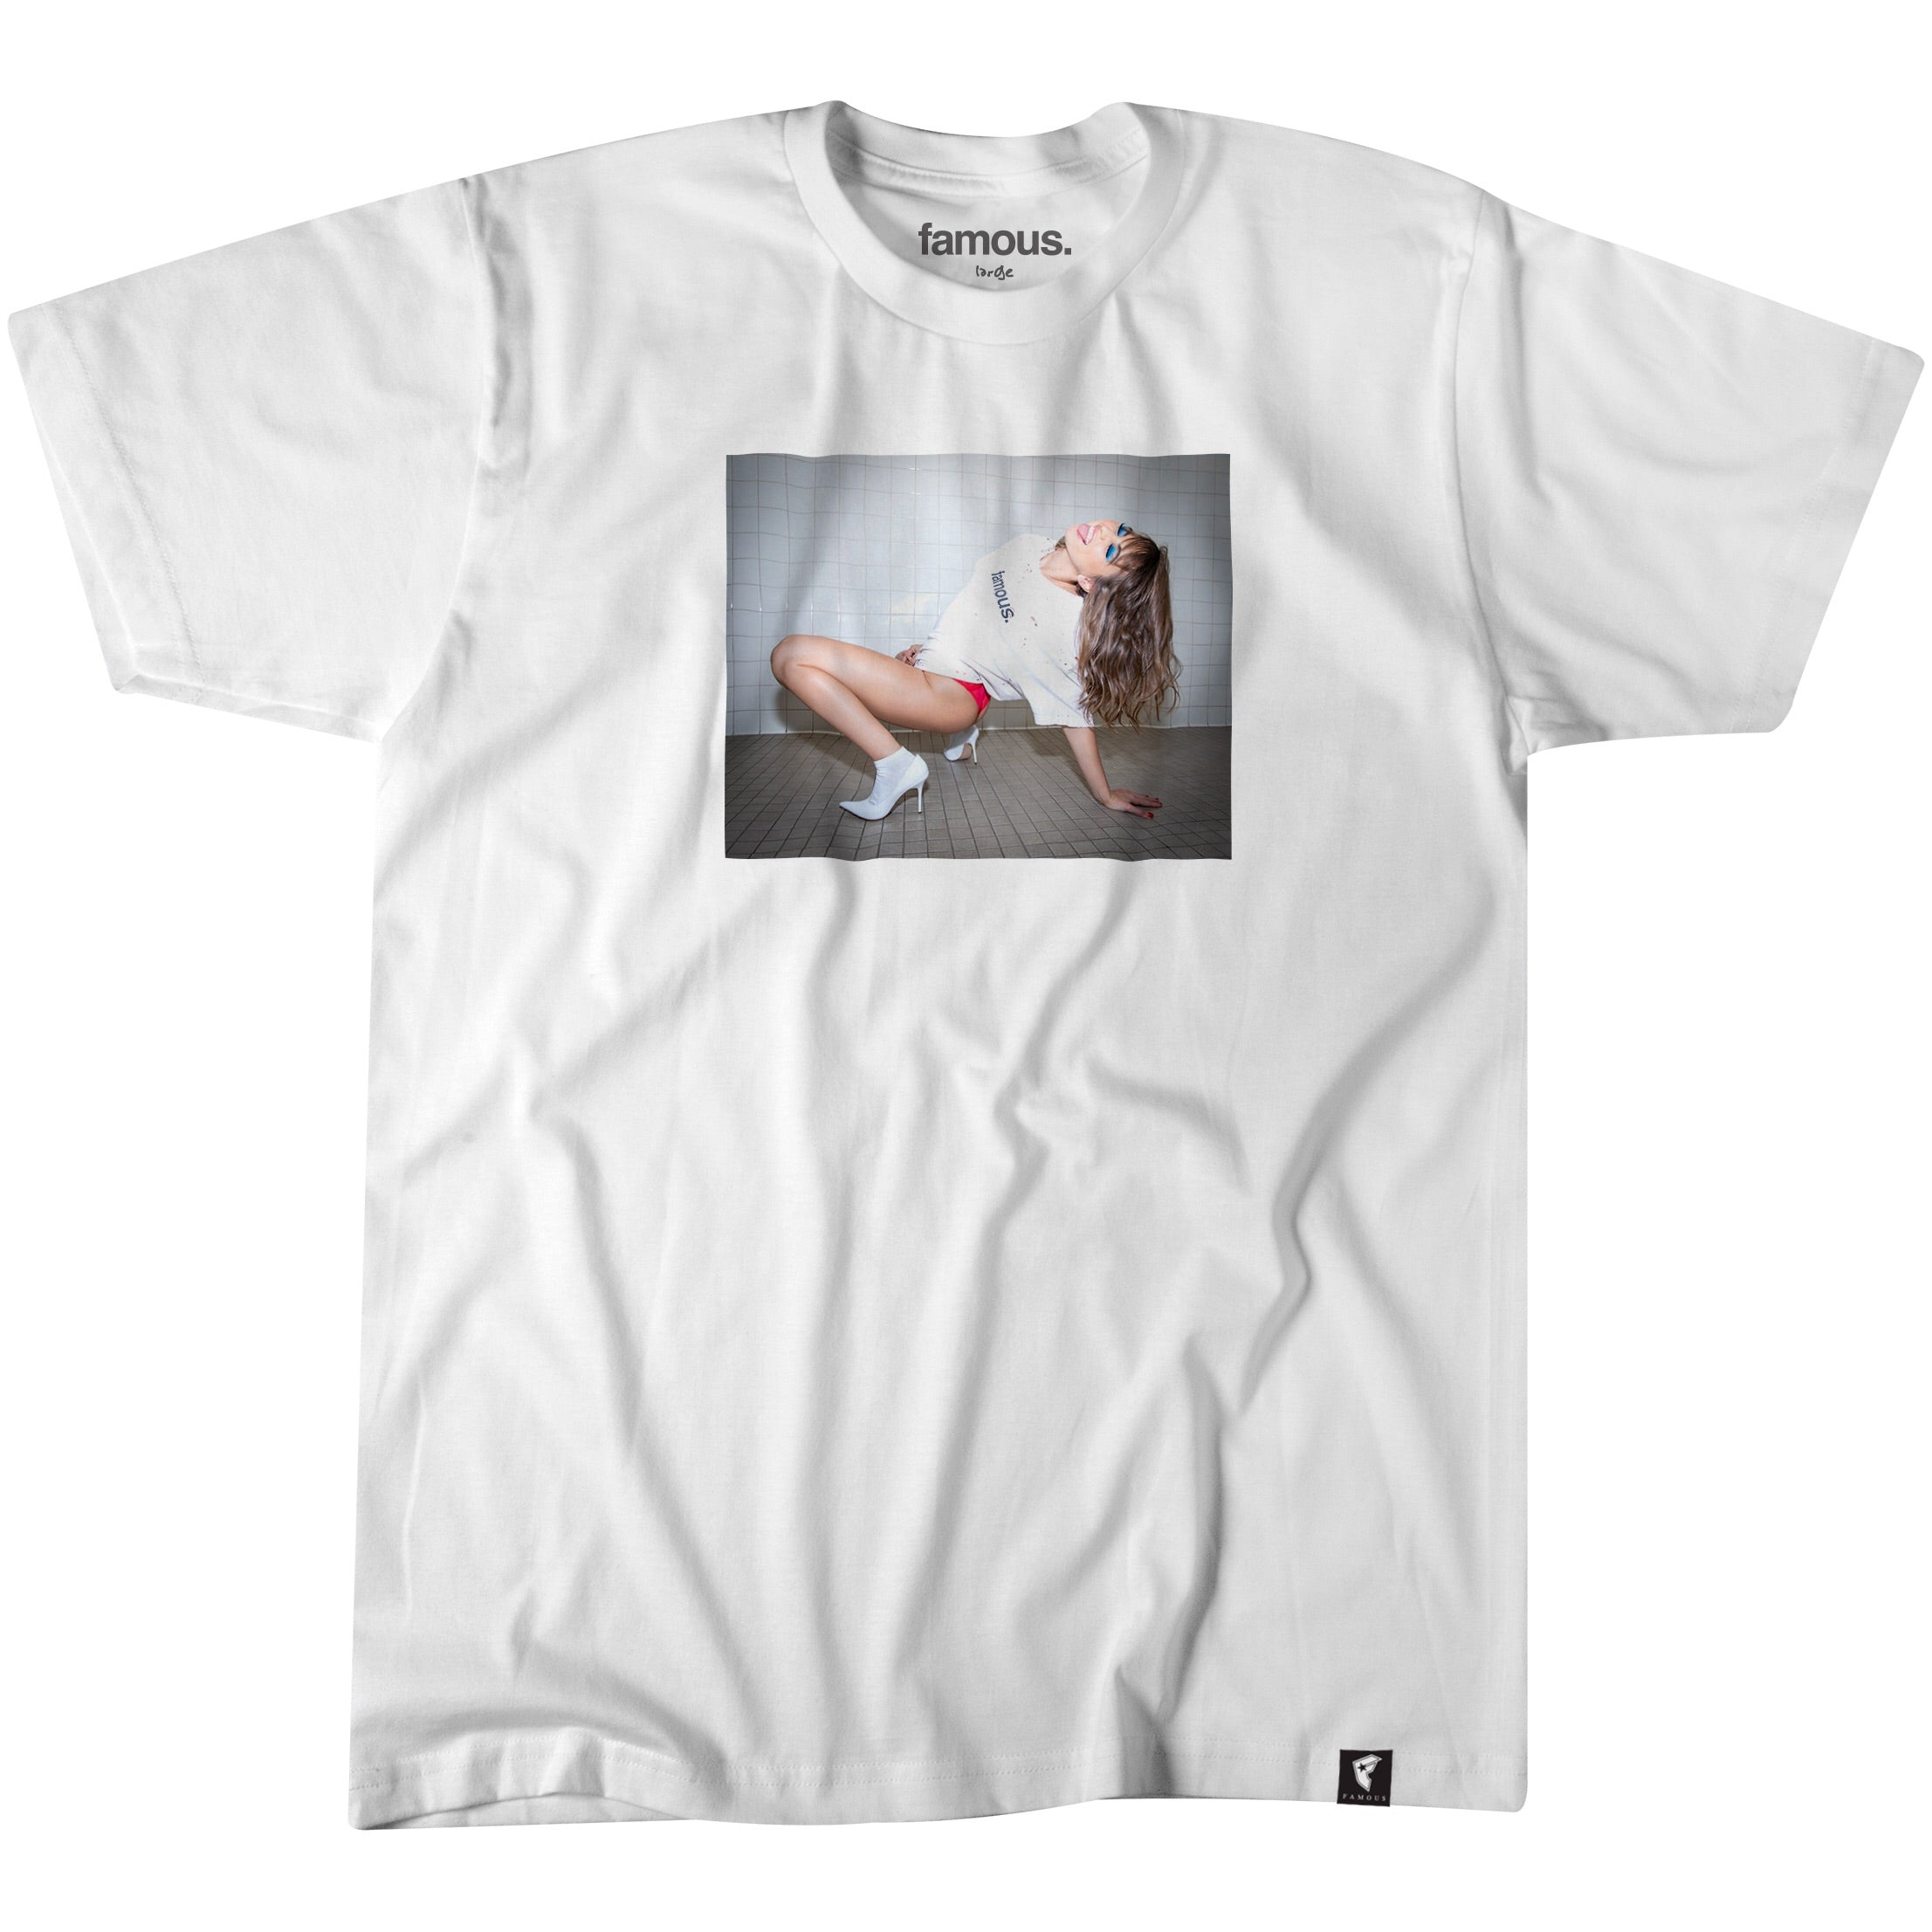 Riley Reid Fact Check tee